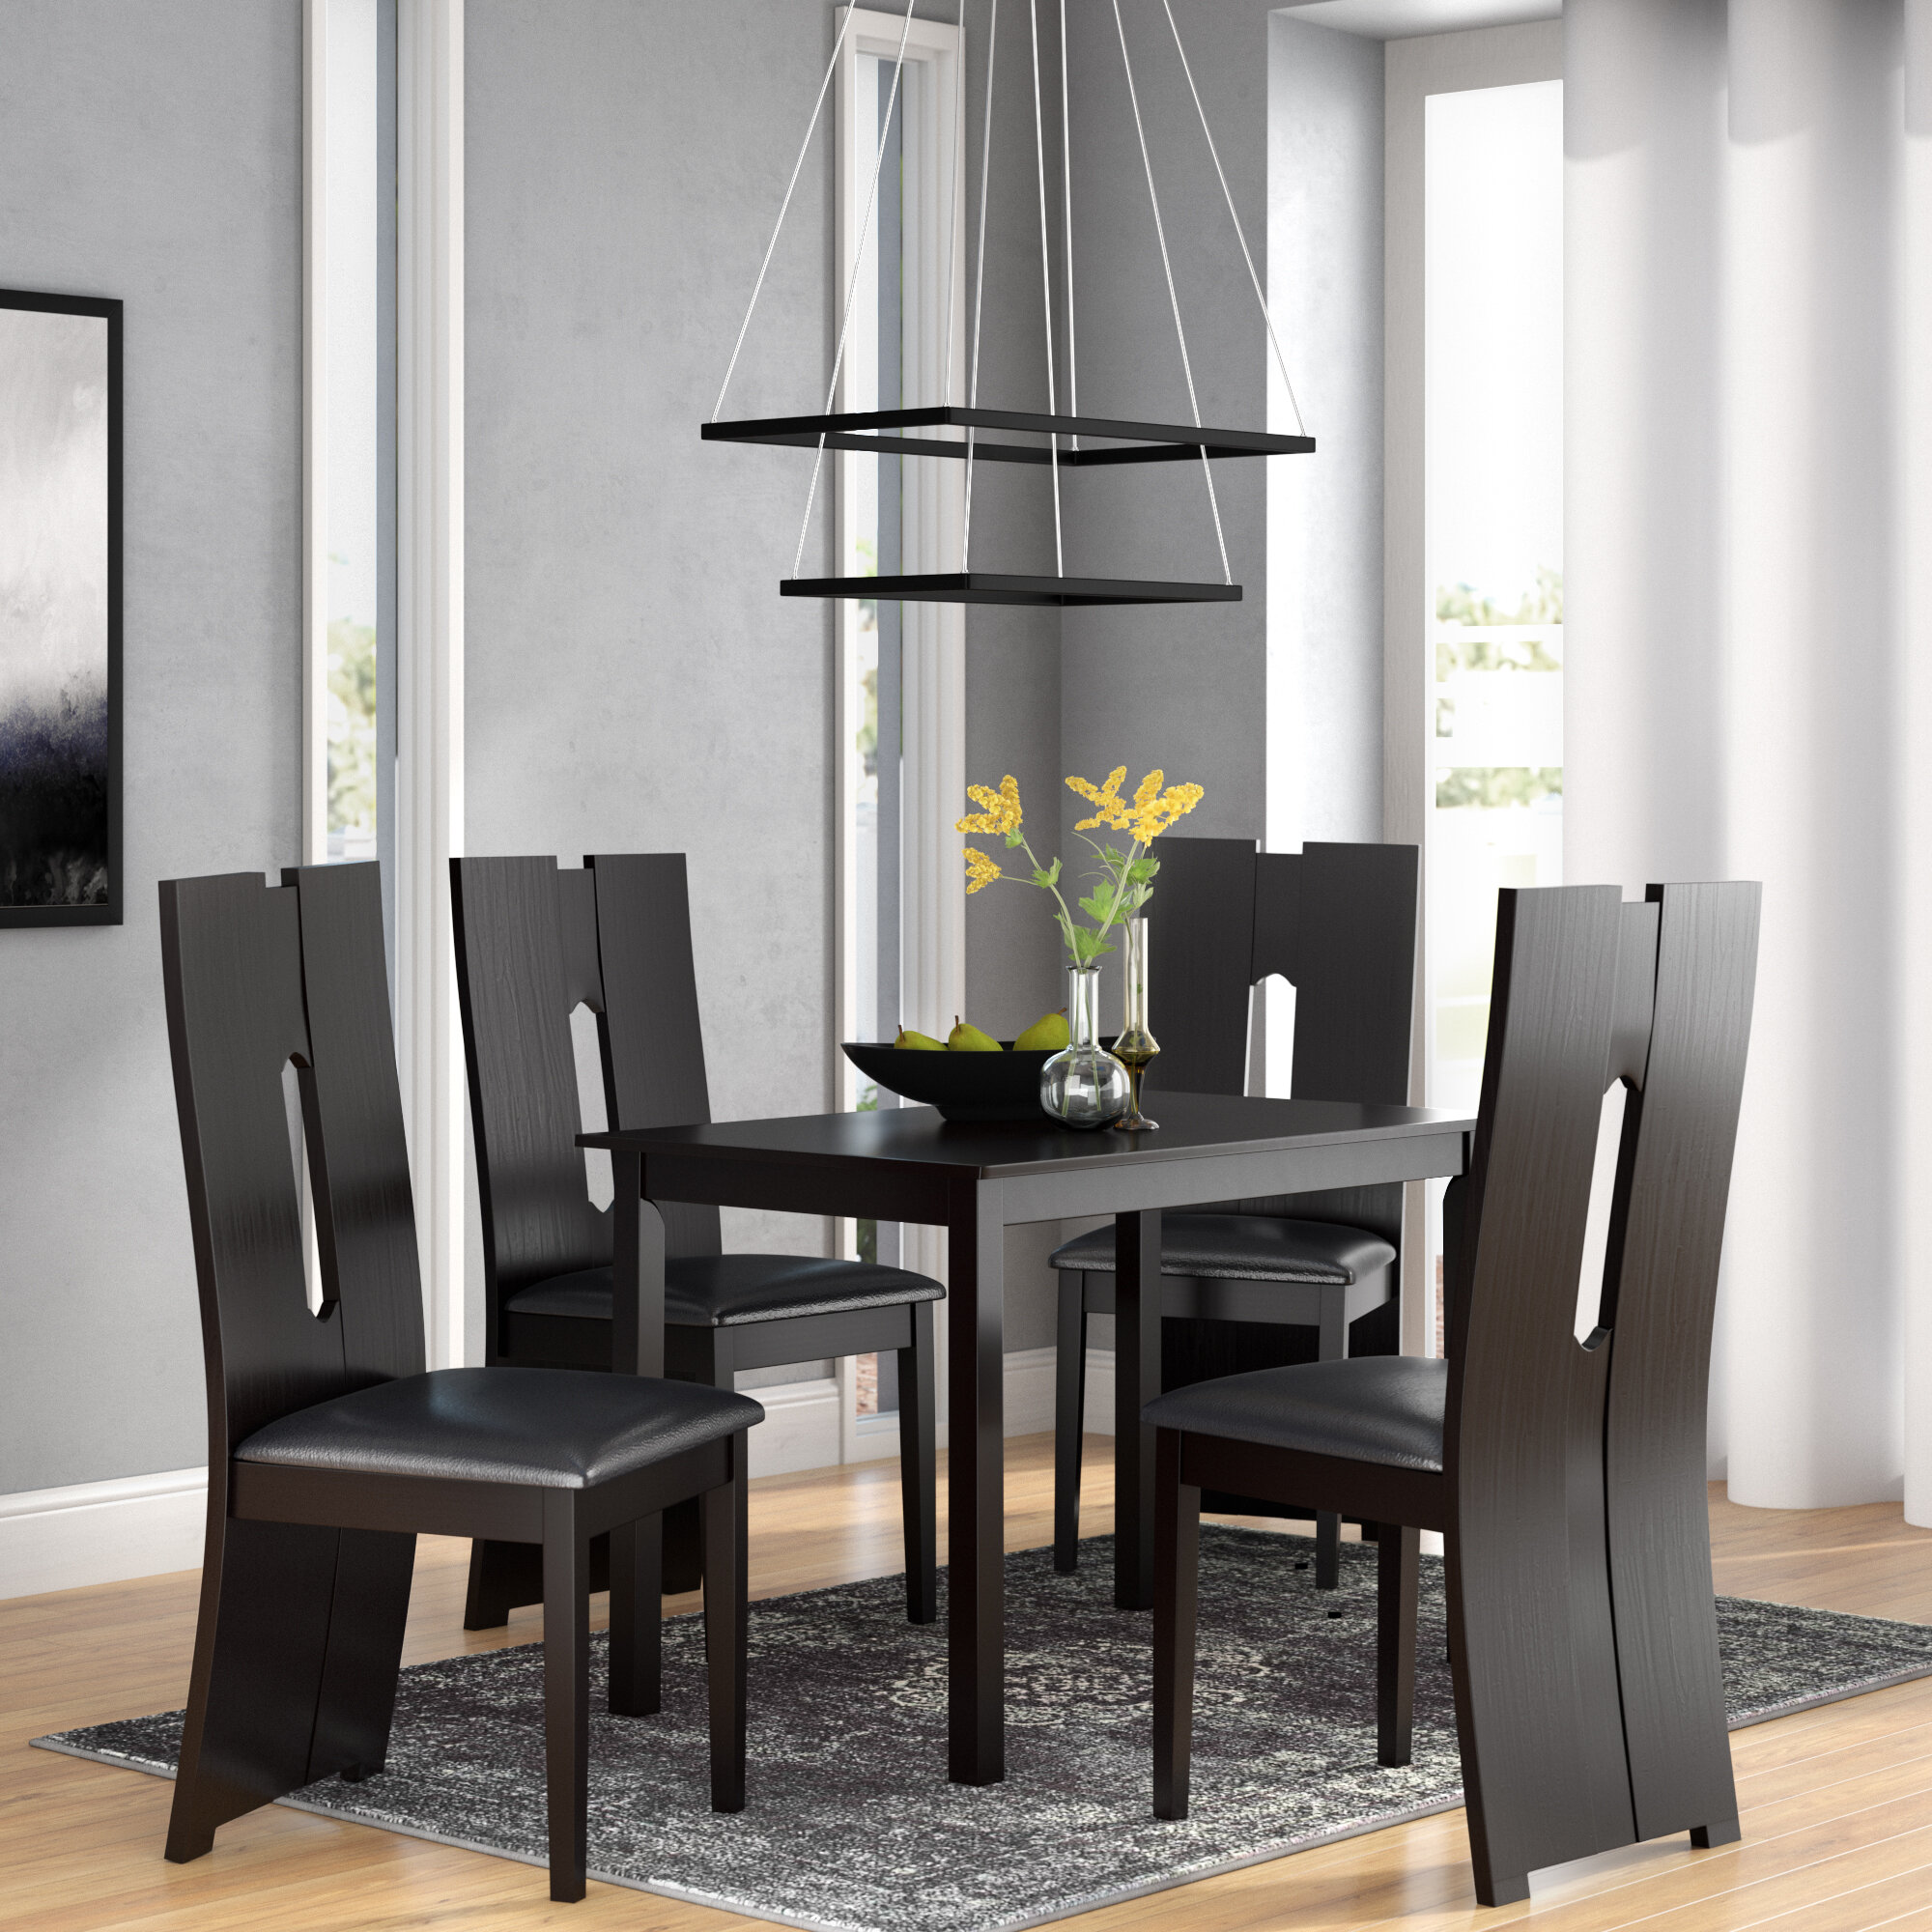 Orren Ellis Onsted Modern And Contemporary 5 Piece Breakfast Nook Dining Set Wayfair